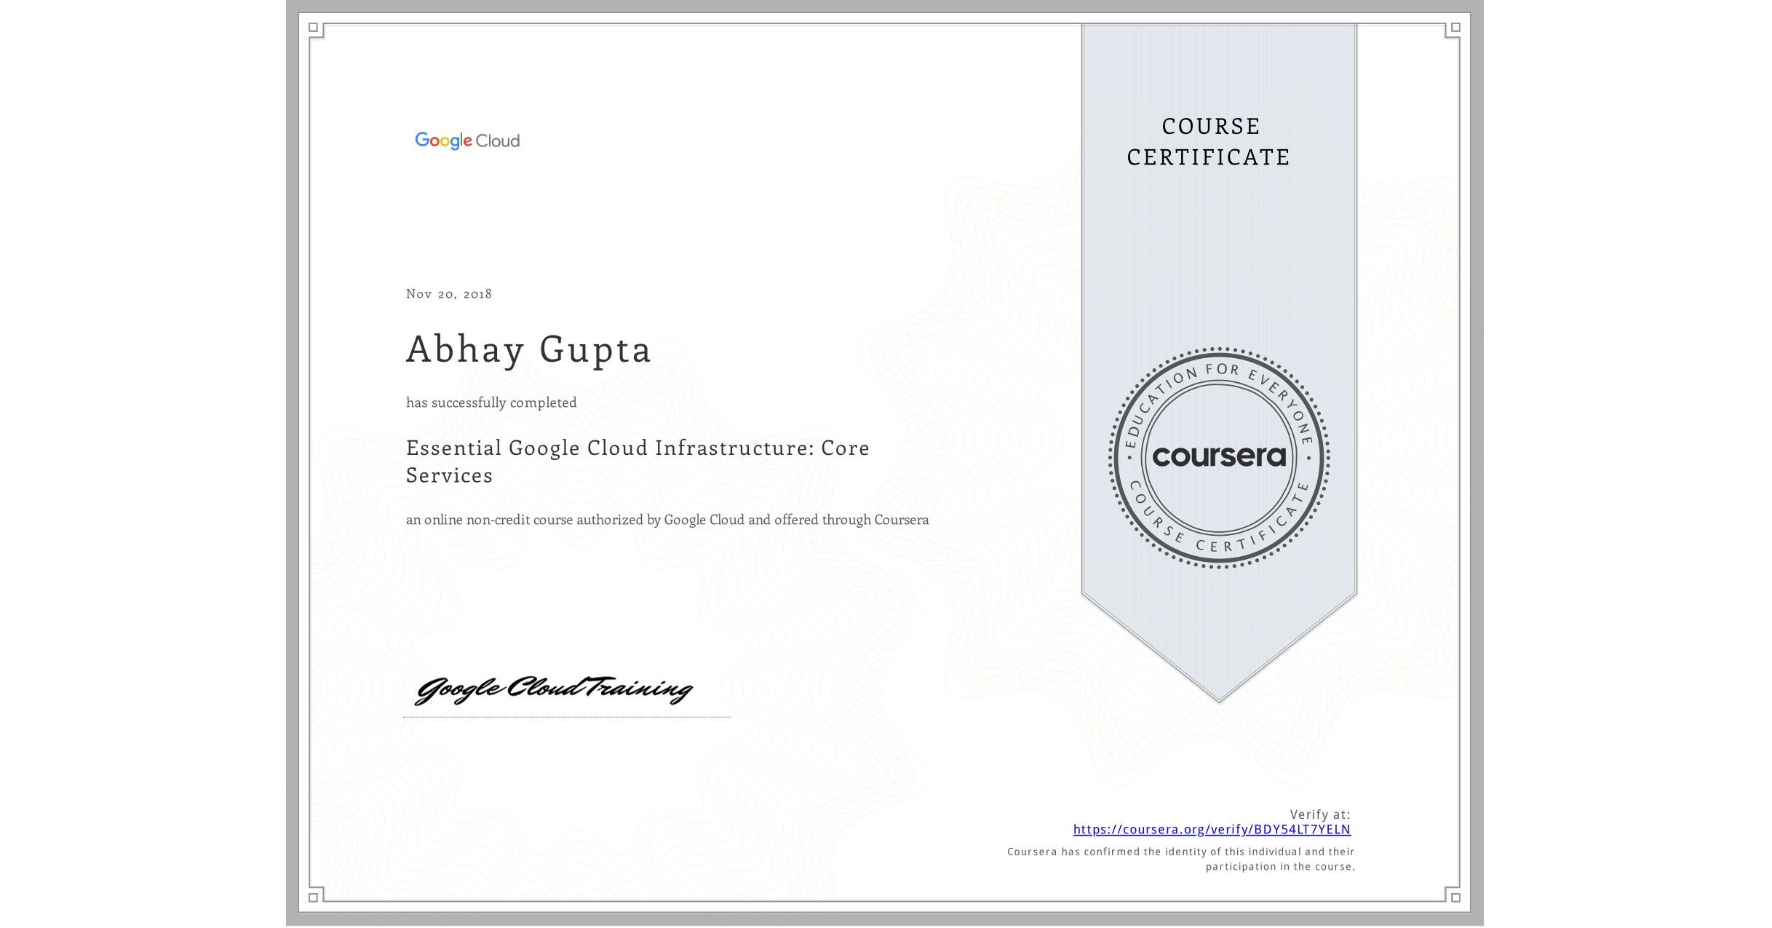 View certificate for Abhay Gupta, Essential Google Cloud Infrastructure: Core Services, an online non-credit course authorized by Google Cloud and offered through Coursera